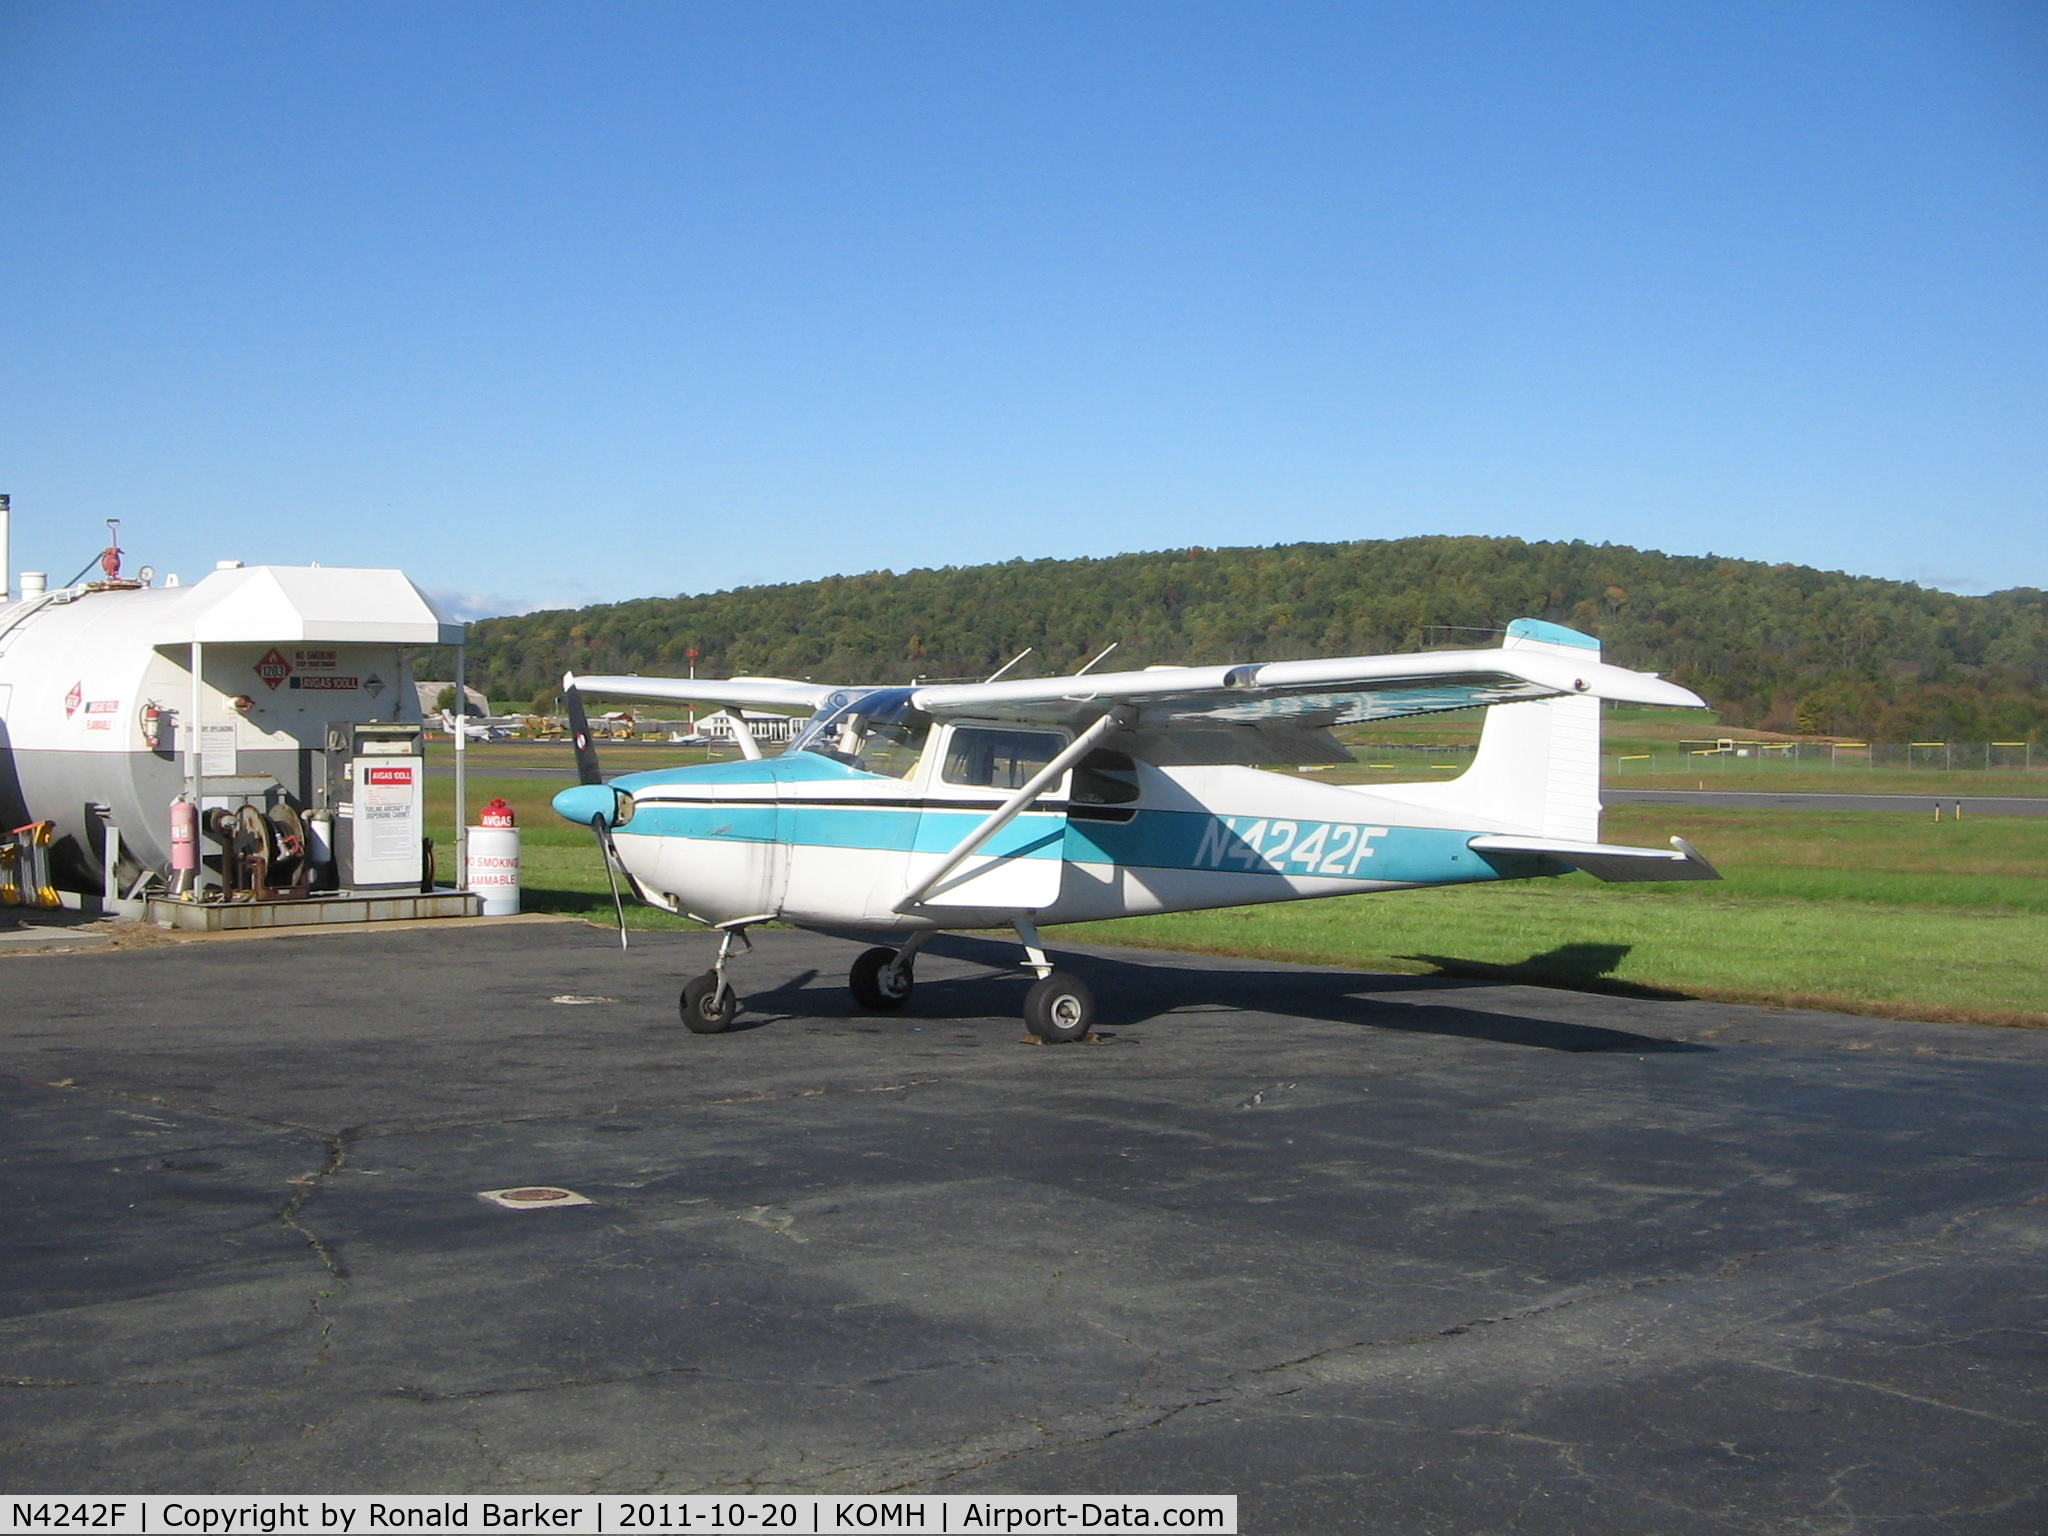 N4242F, 1958 Cessna 172 Skyhawk C/N 46142, Orange, VA